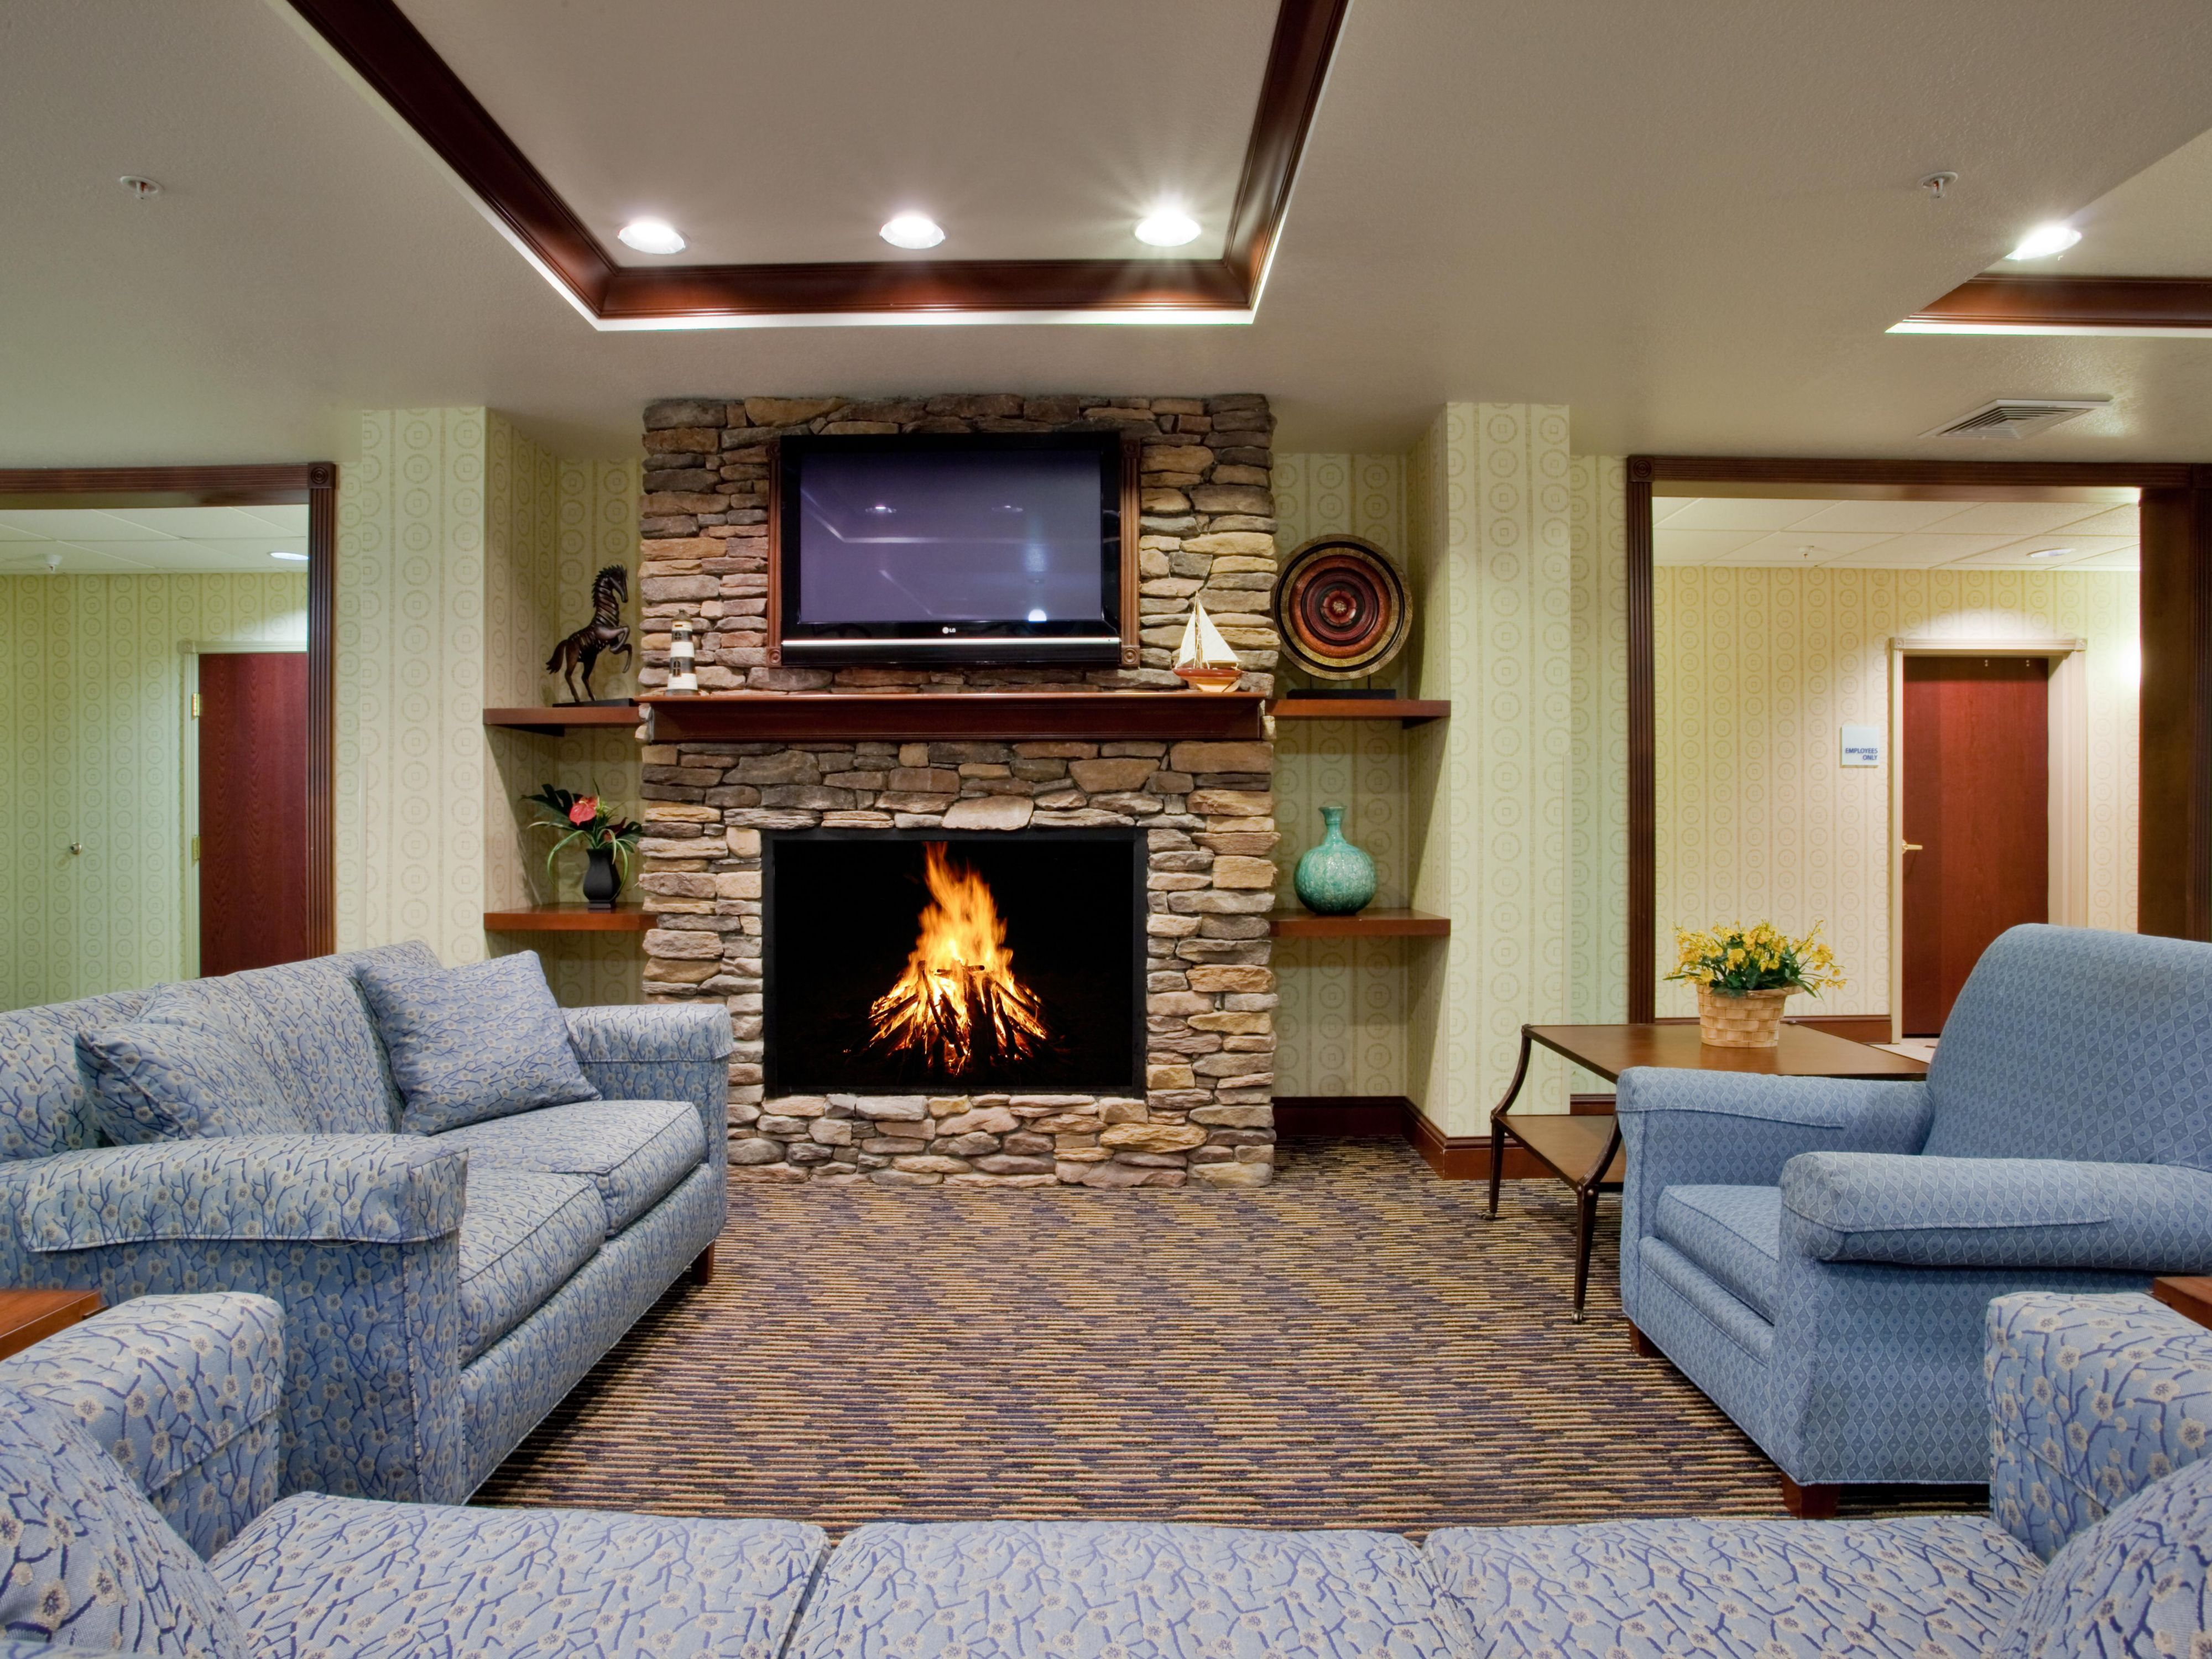 Relax, Watch TV in our great room and keep warm with a cozy fire.